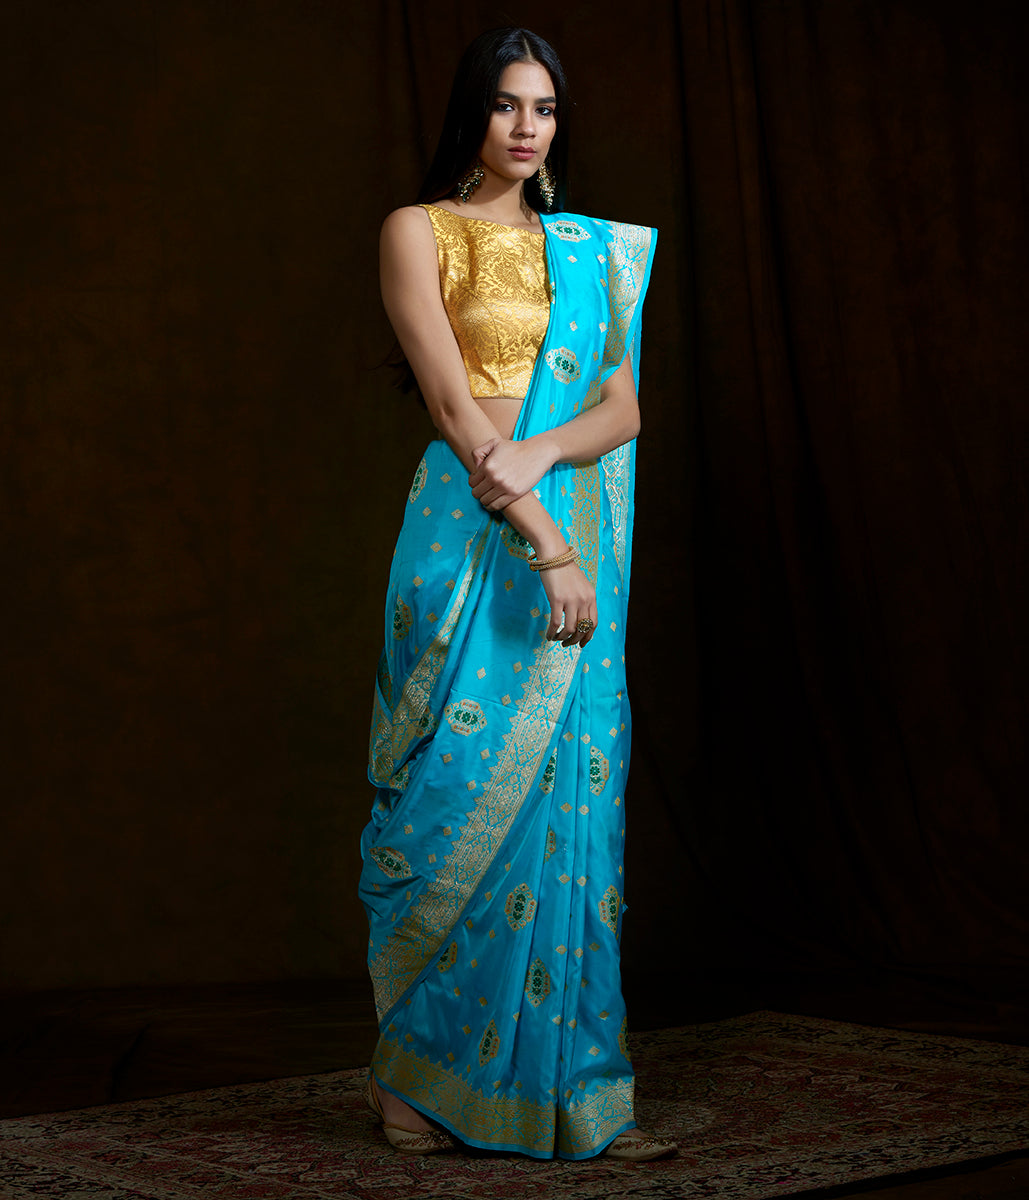 Turquoise blue latan silk saree with meenakari tanzeb booti